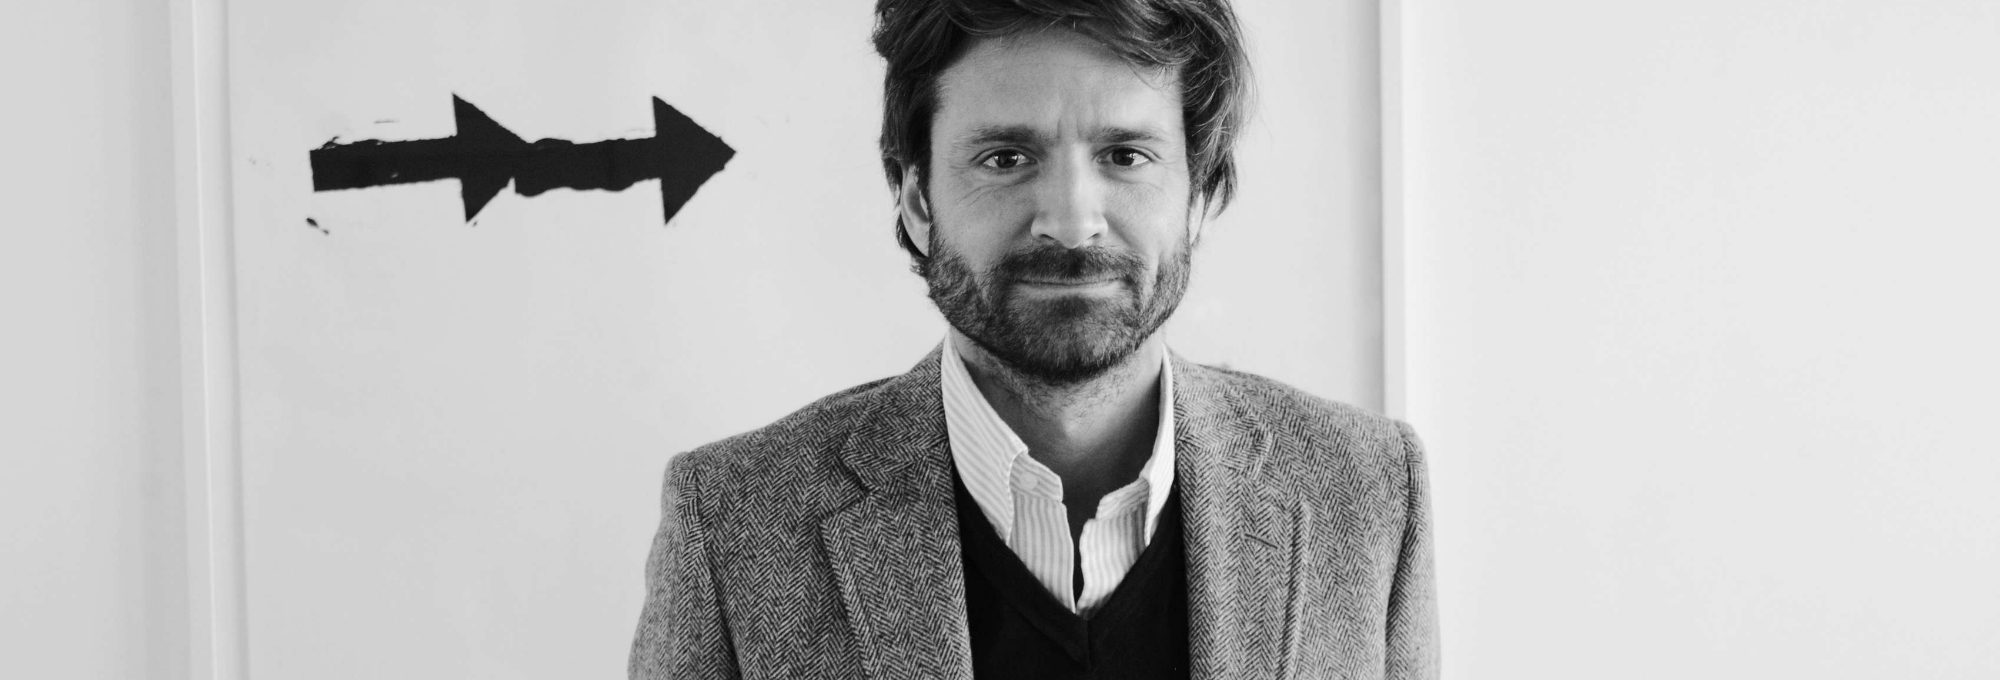 Meet The Top 10 Best French Interior Designers From AD100 2018